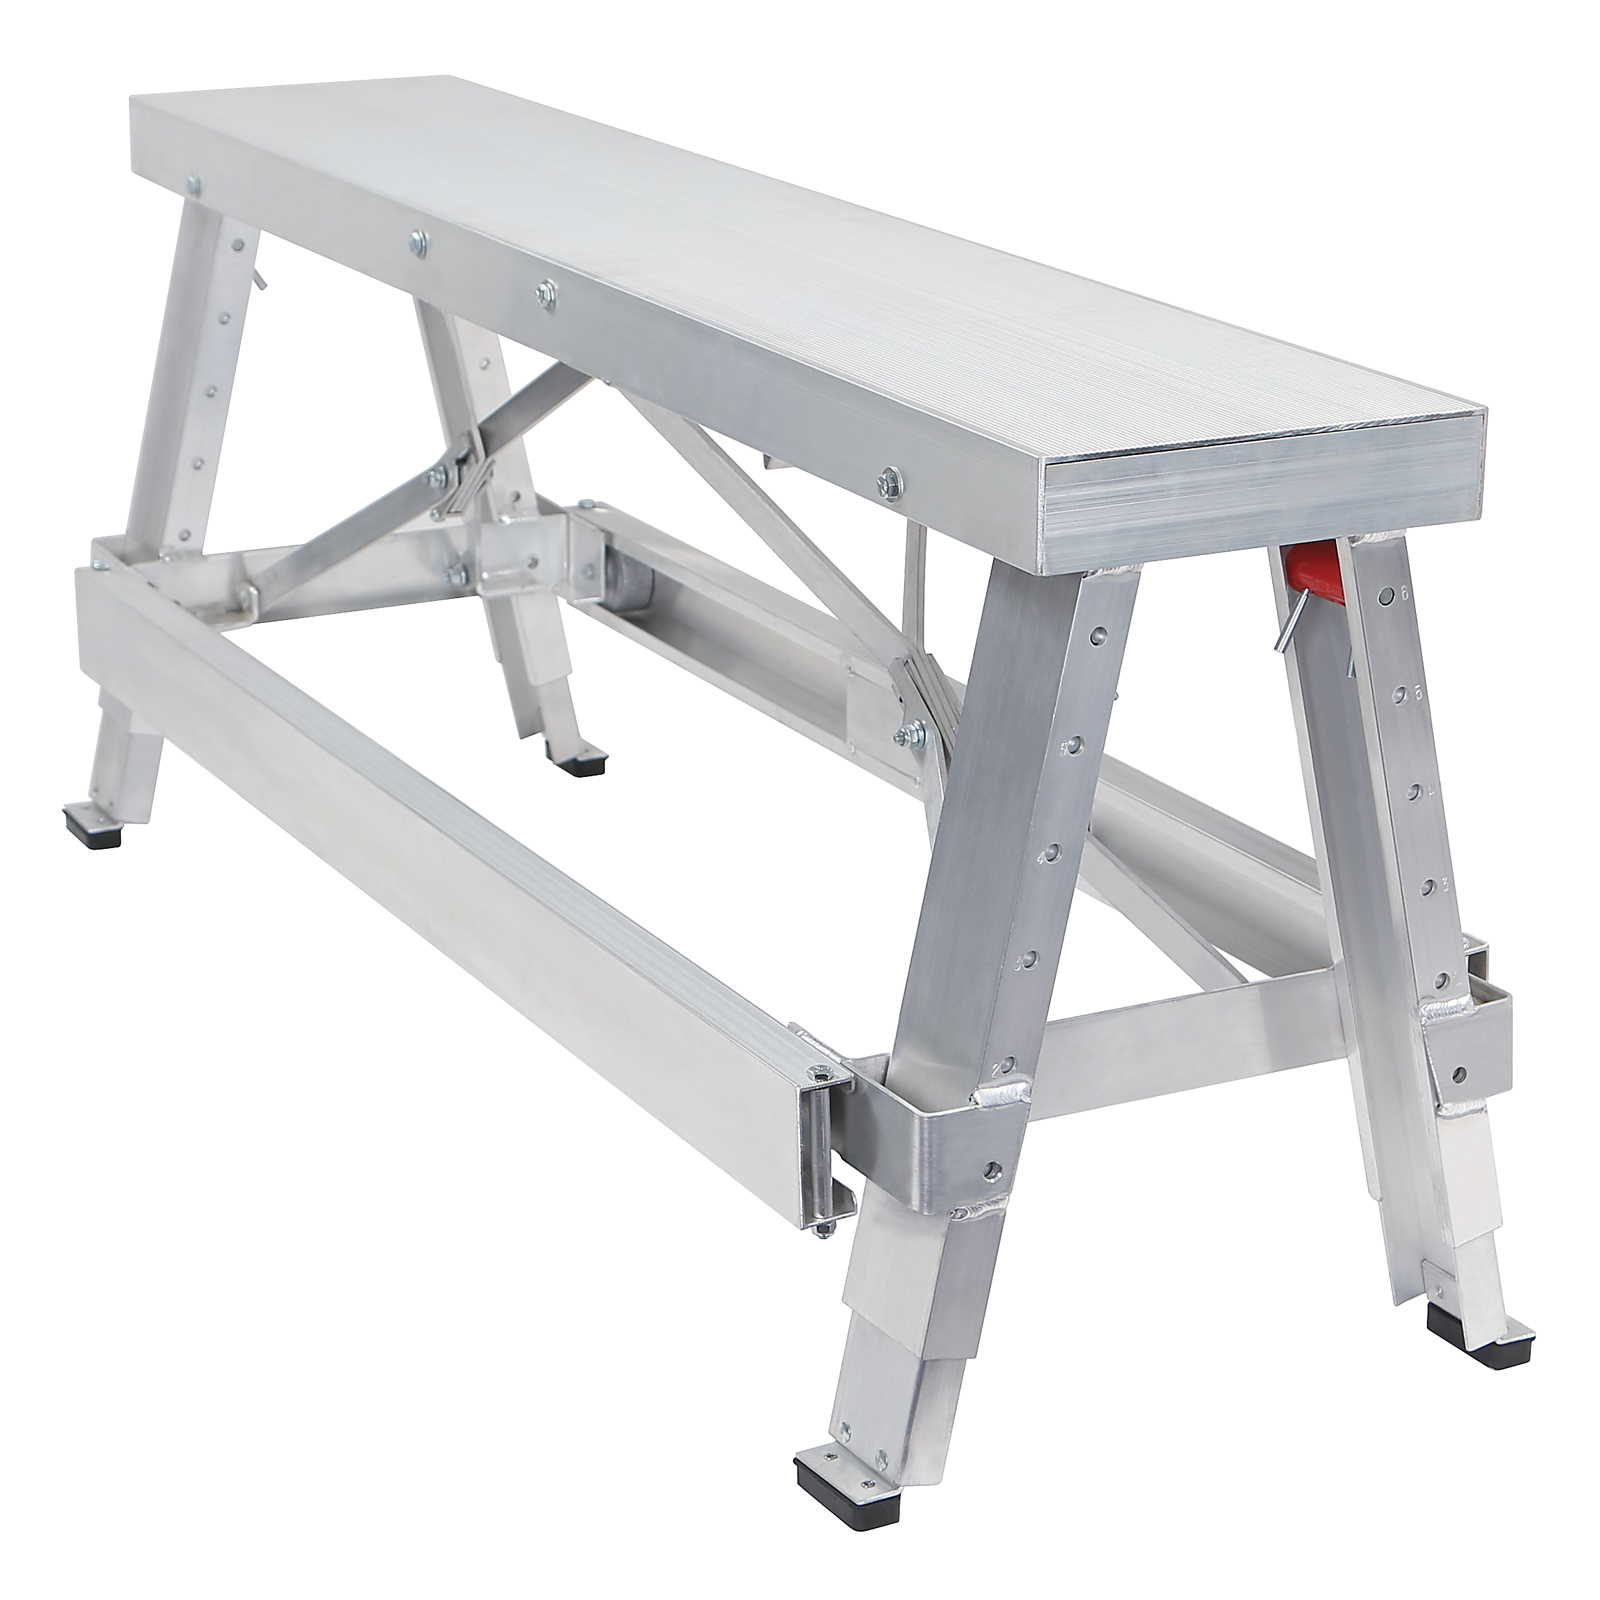 GypTool Adjustable Height Drywall Taping & Finishing Walk-Up Bench: 18 in. 30 in. by GypTool